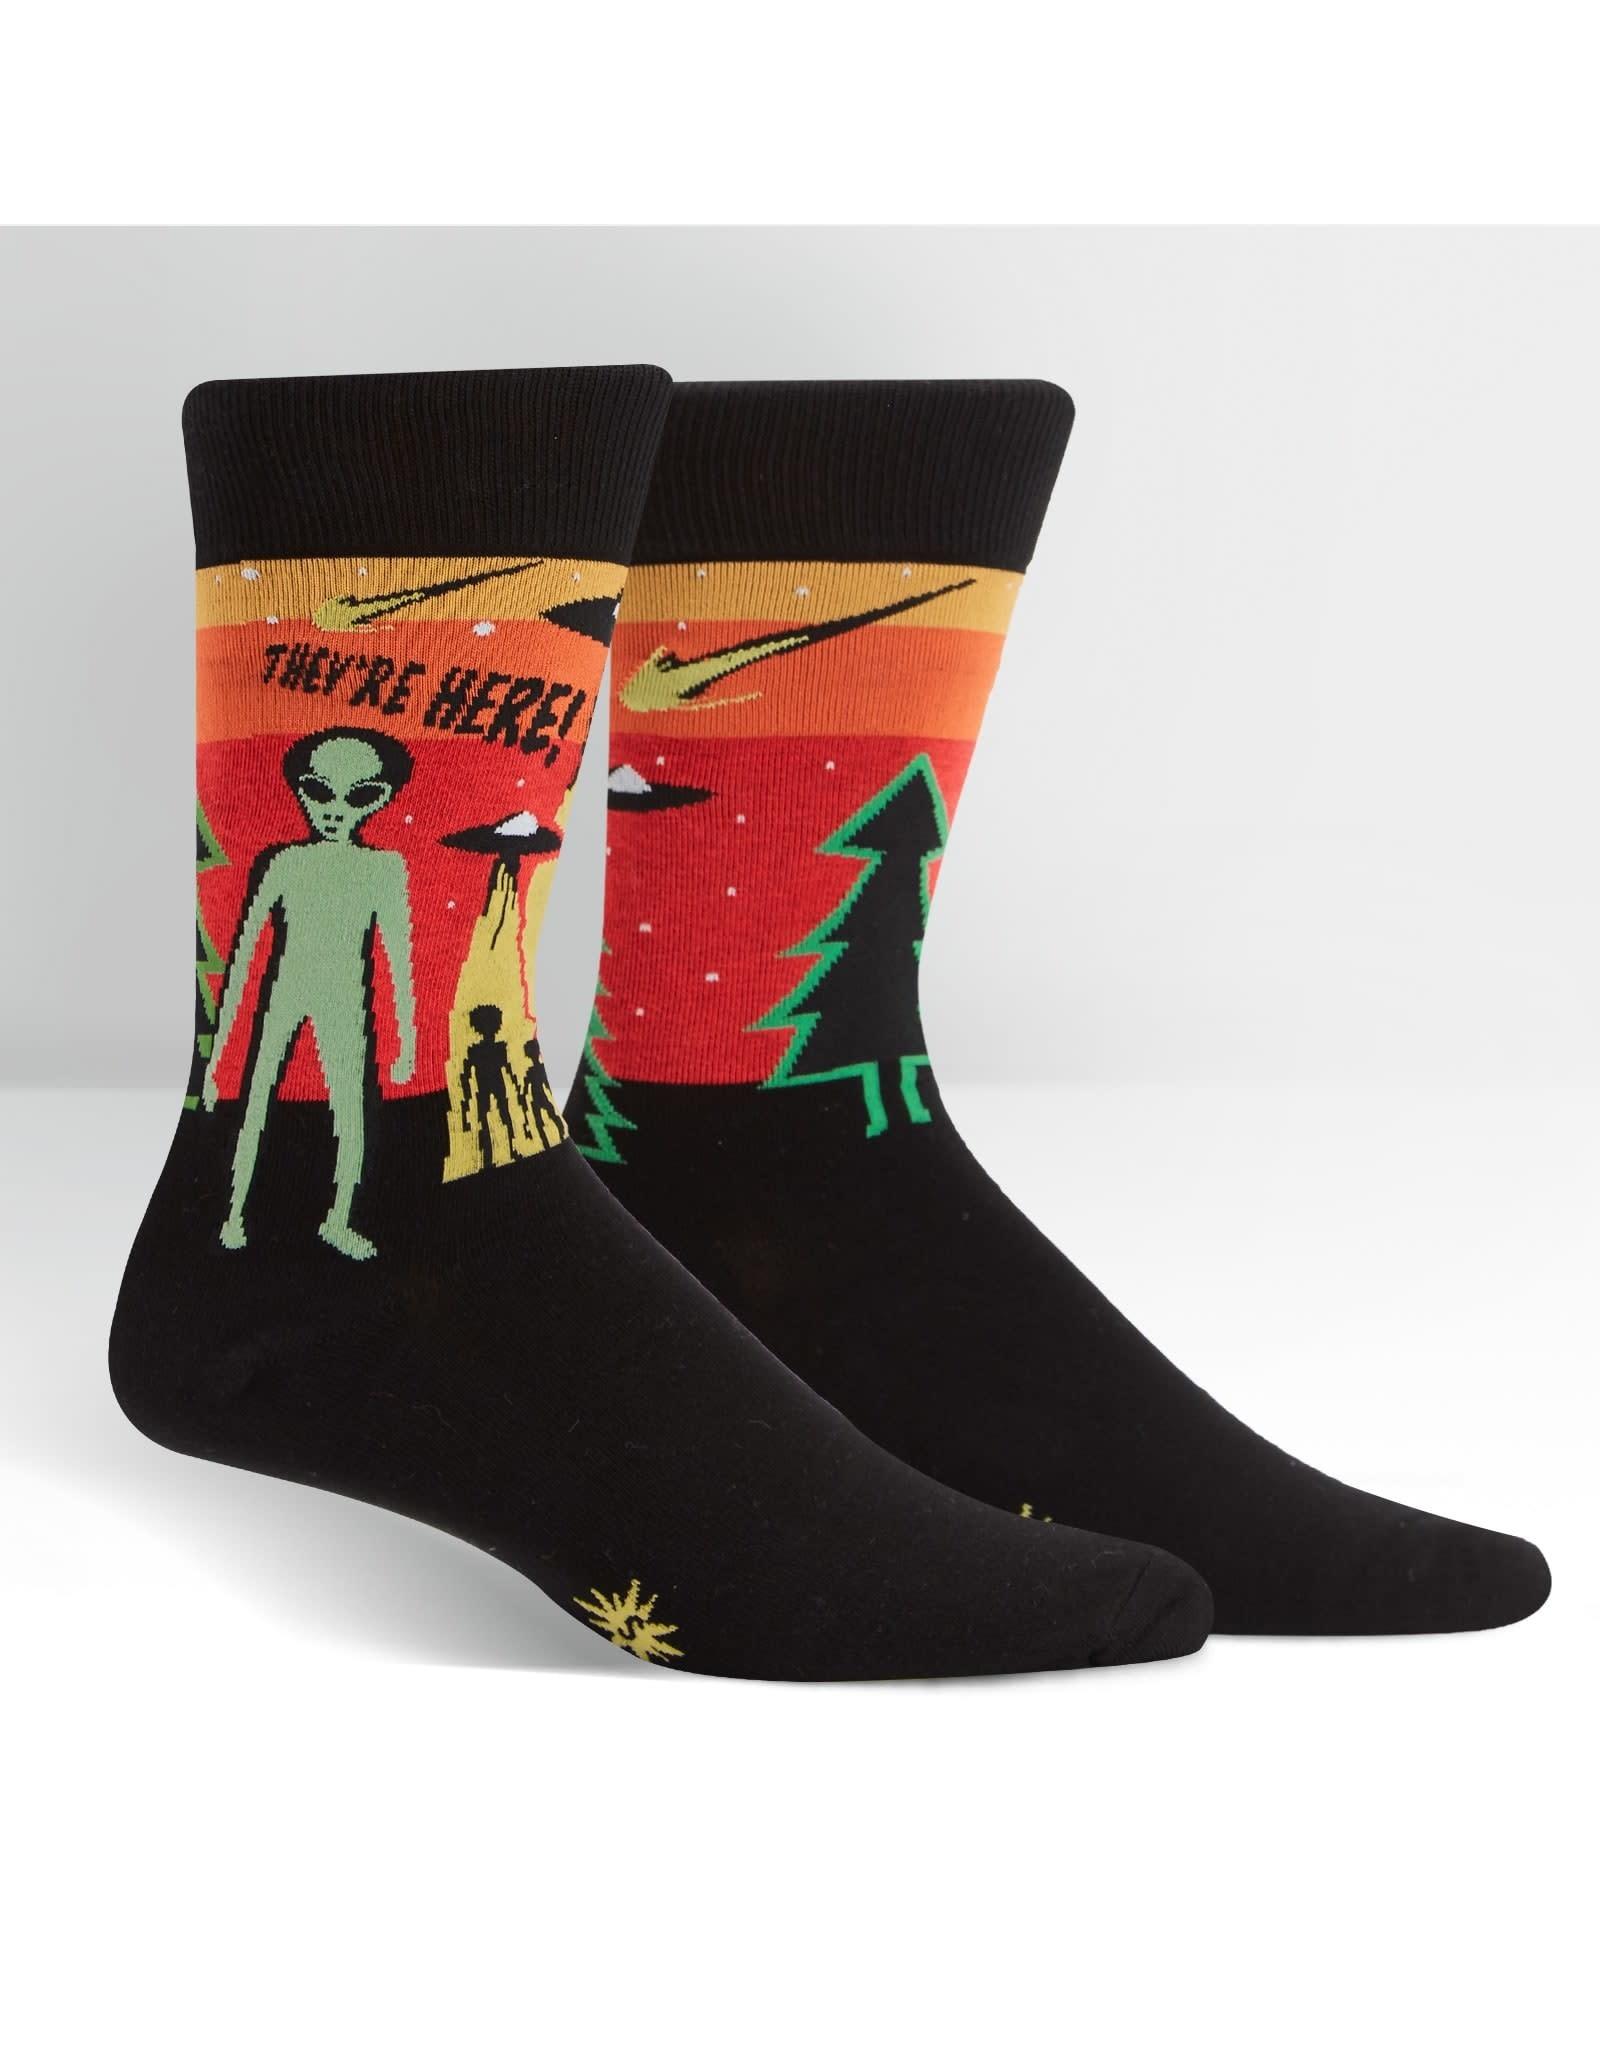 SOCK IT TO ME - Men's They're Here Crew Socks